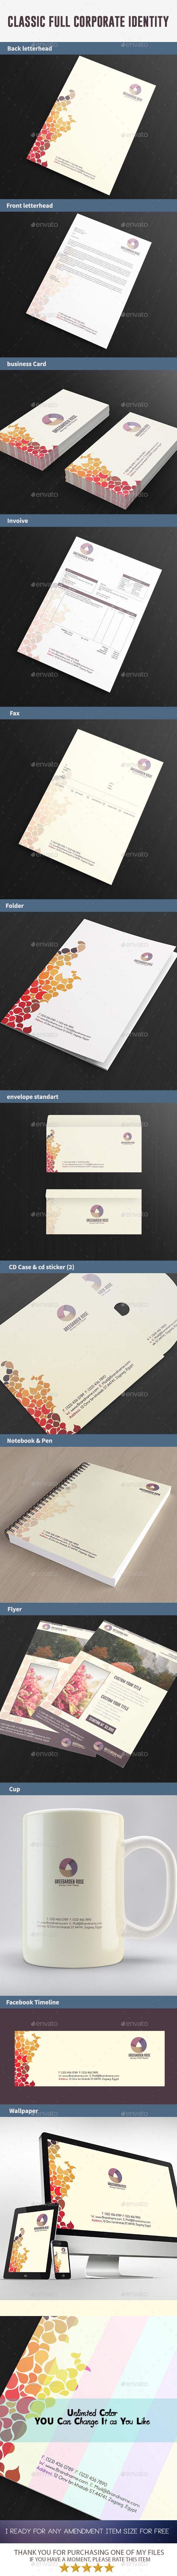 GraphicRiver Classic Full Corporate Identity 8927185